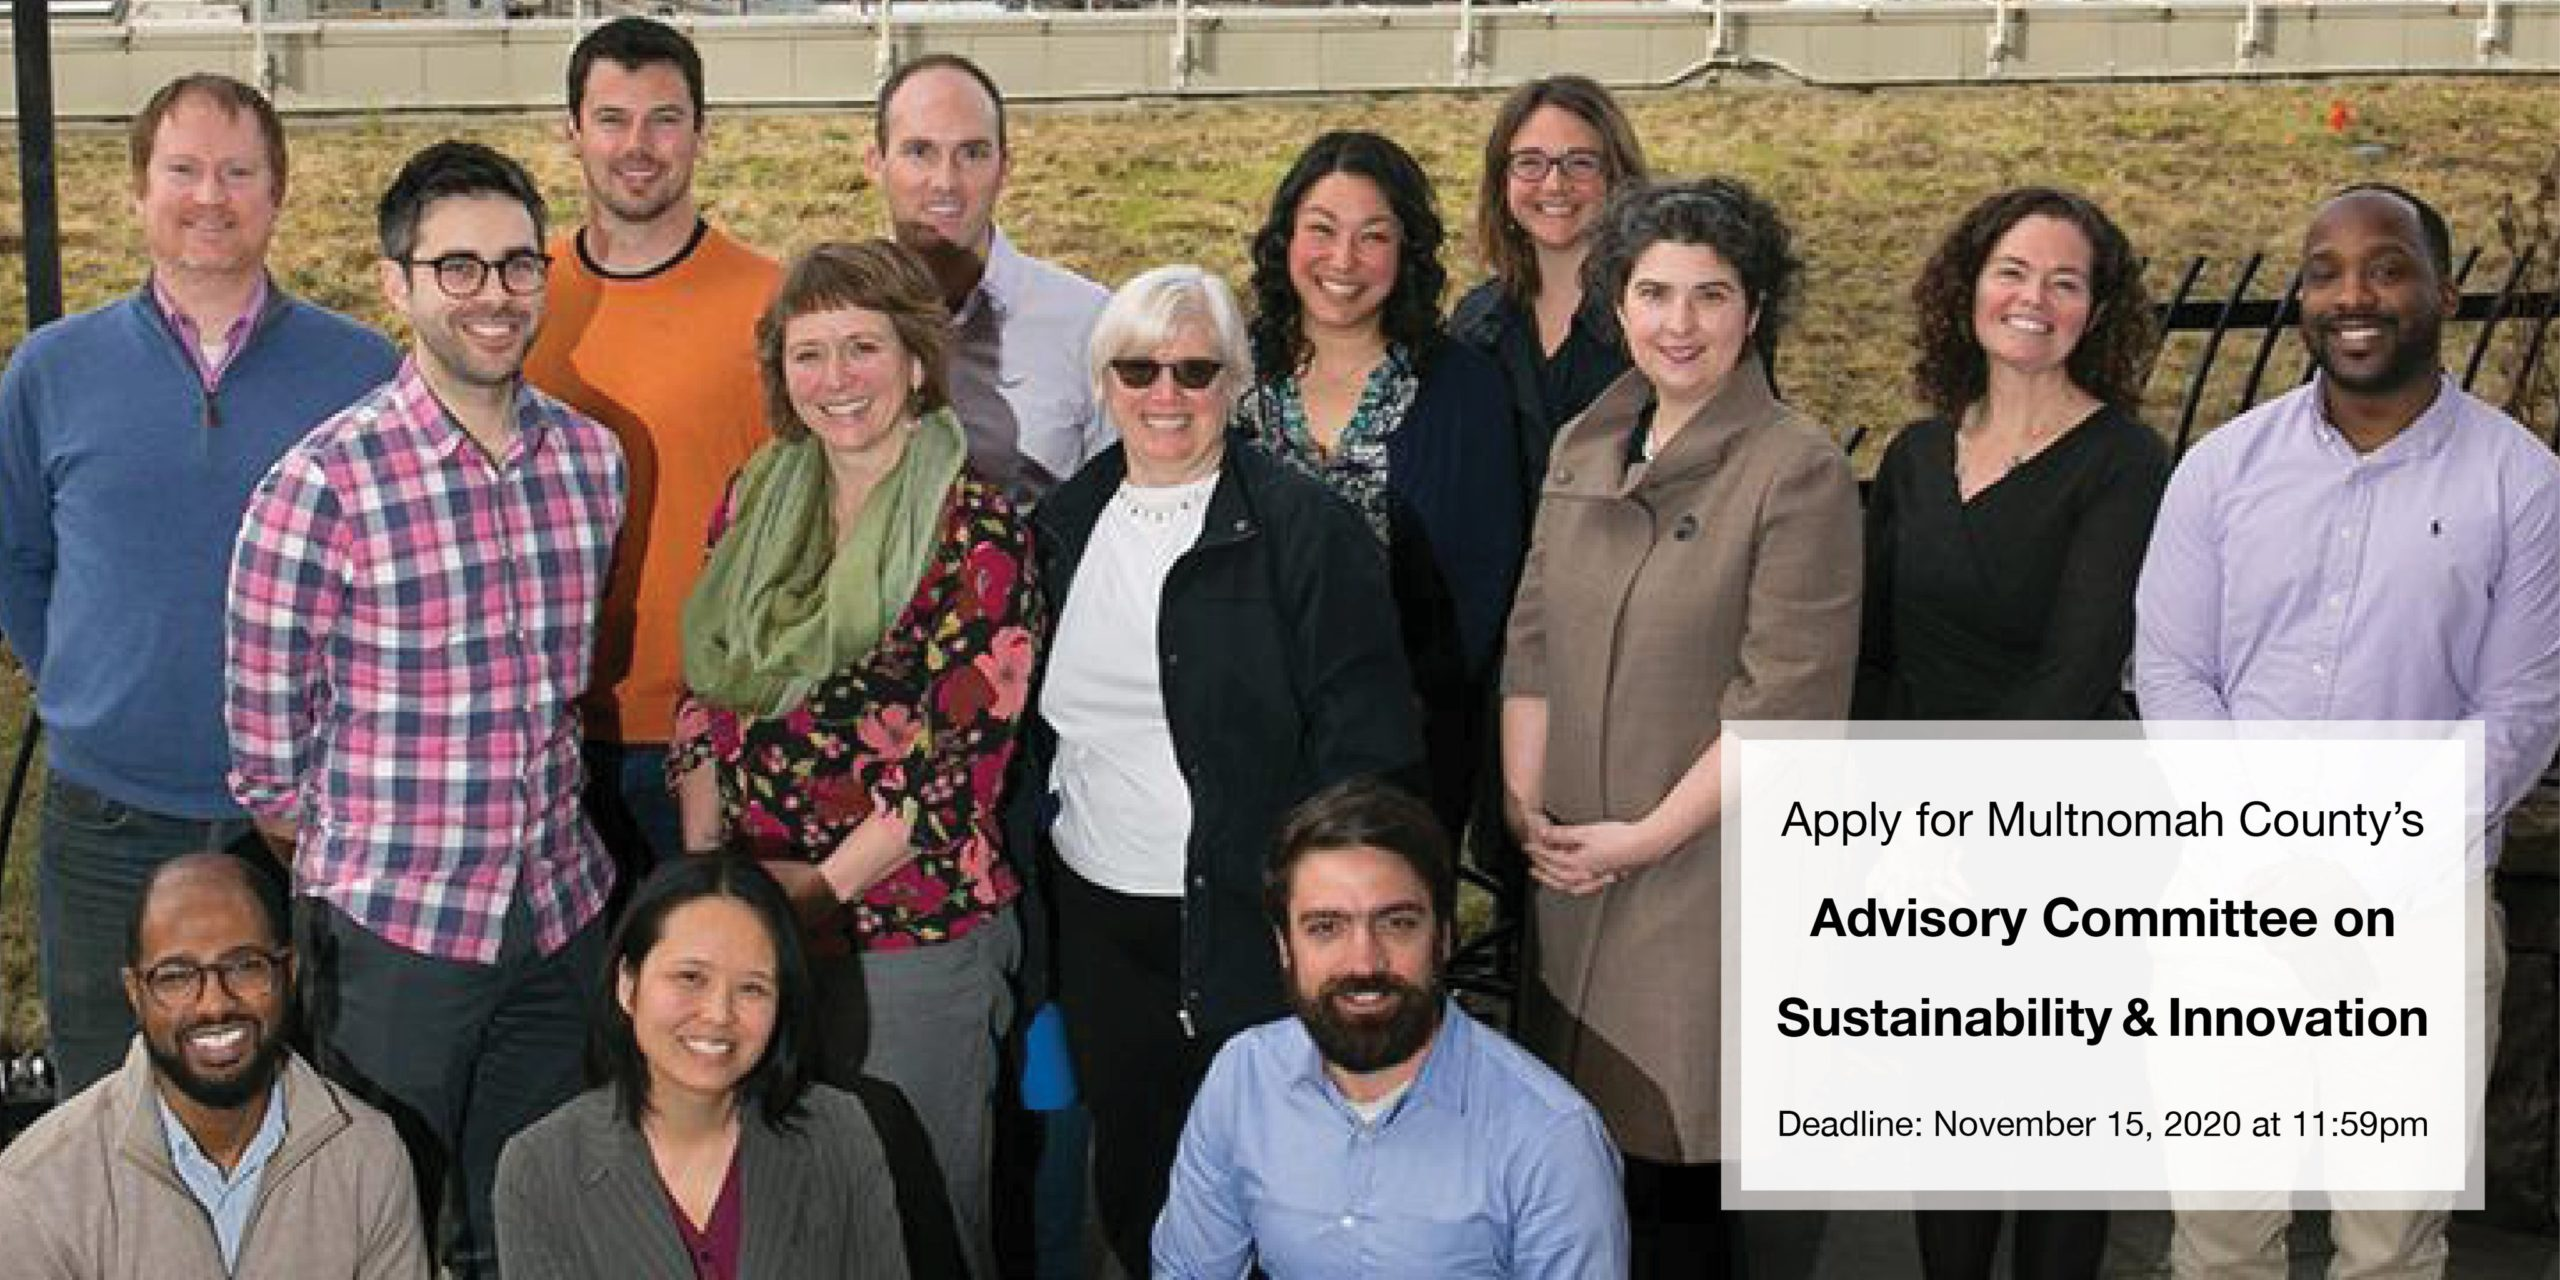 Multnomah County Advisory Committee on Sustainability & Innovation